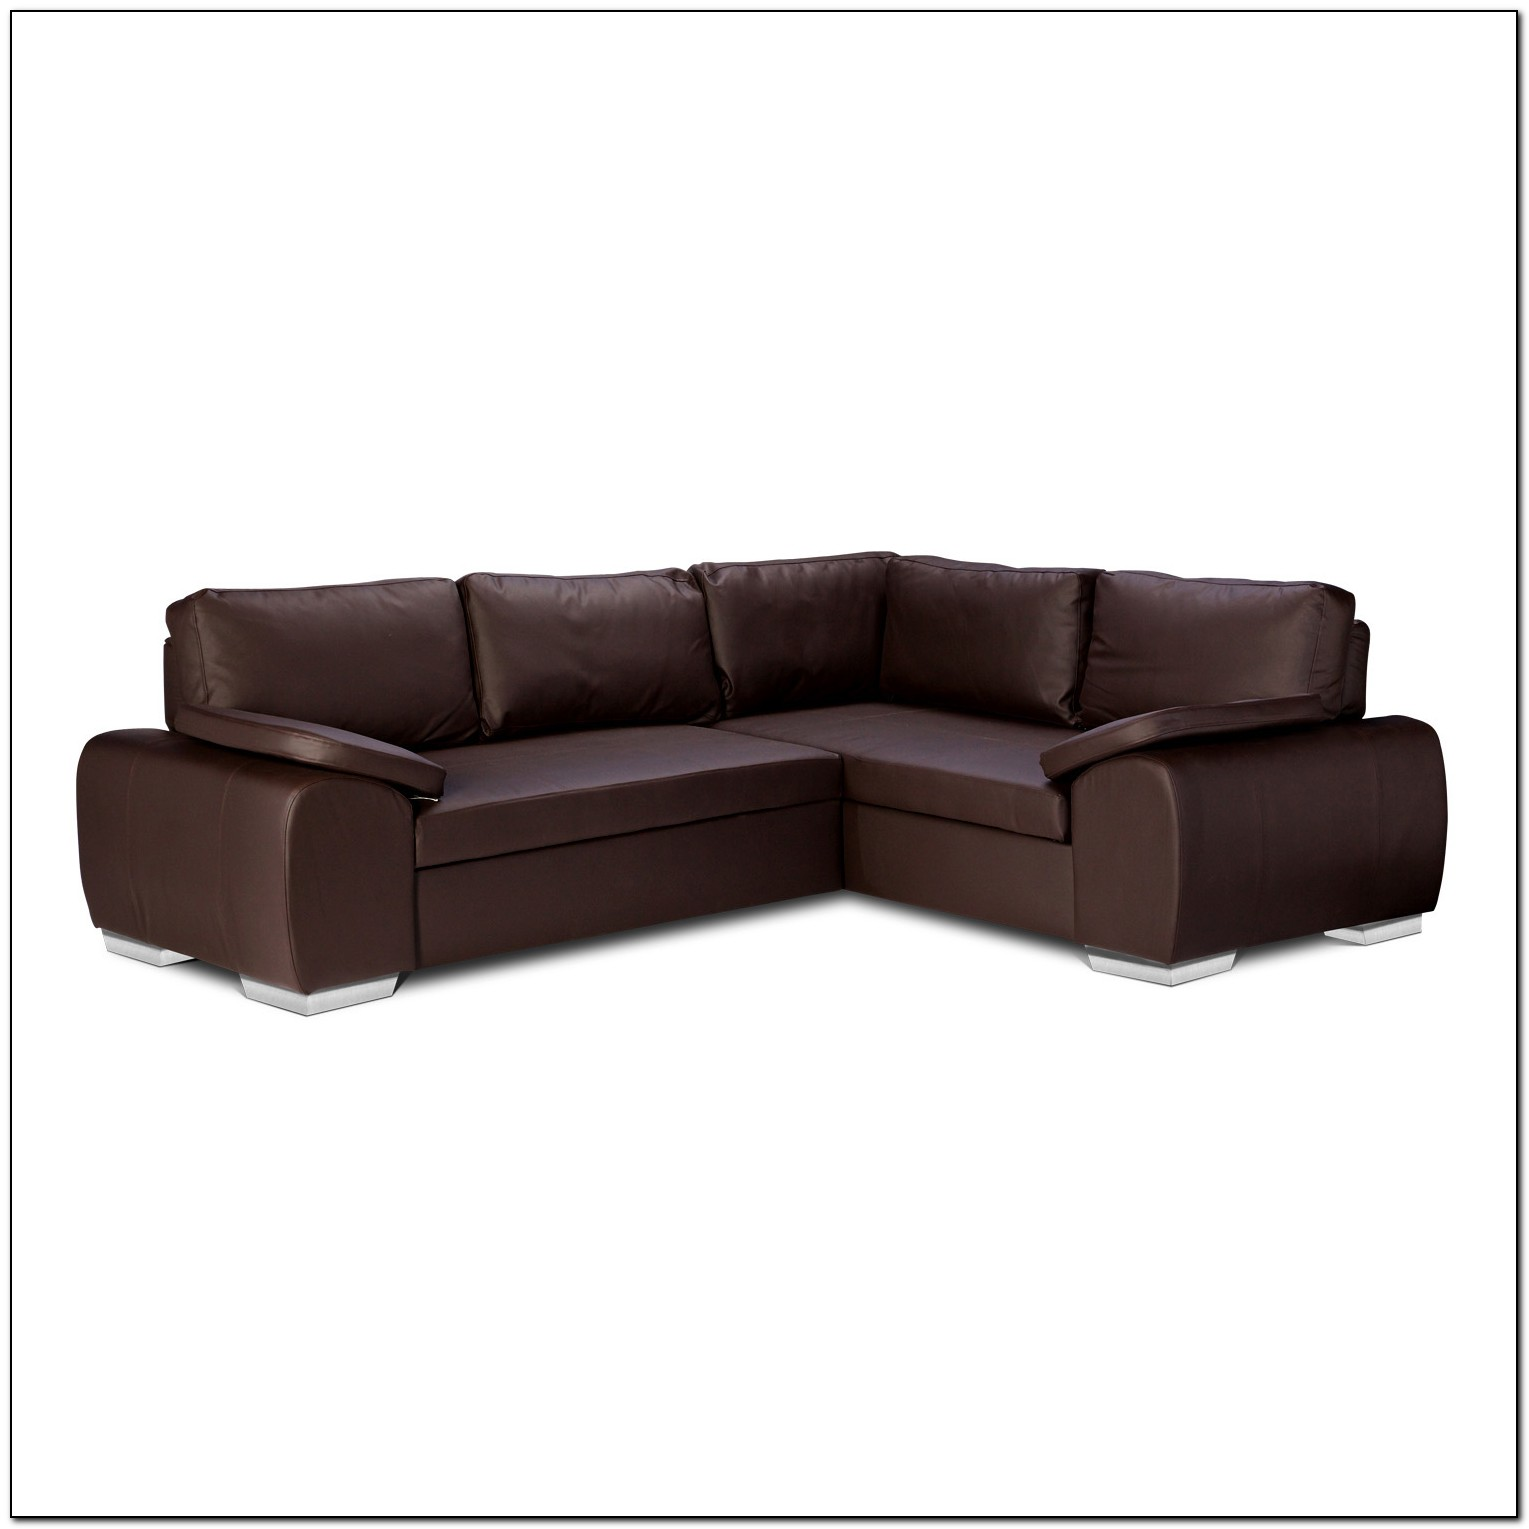 Small Sofa Bed With Storage